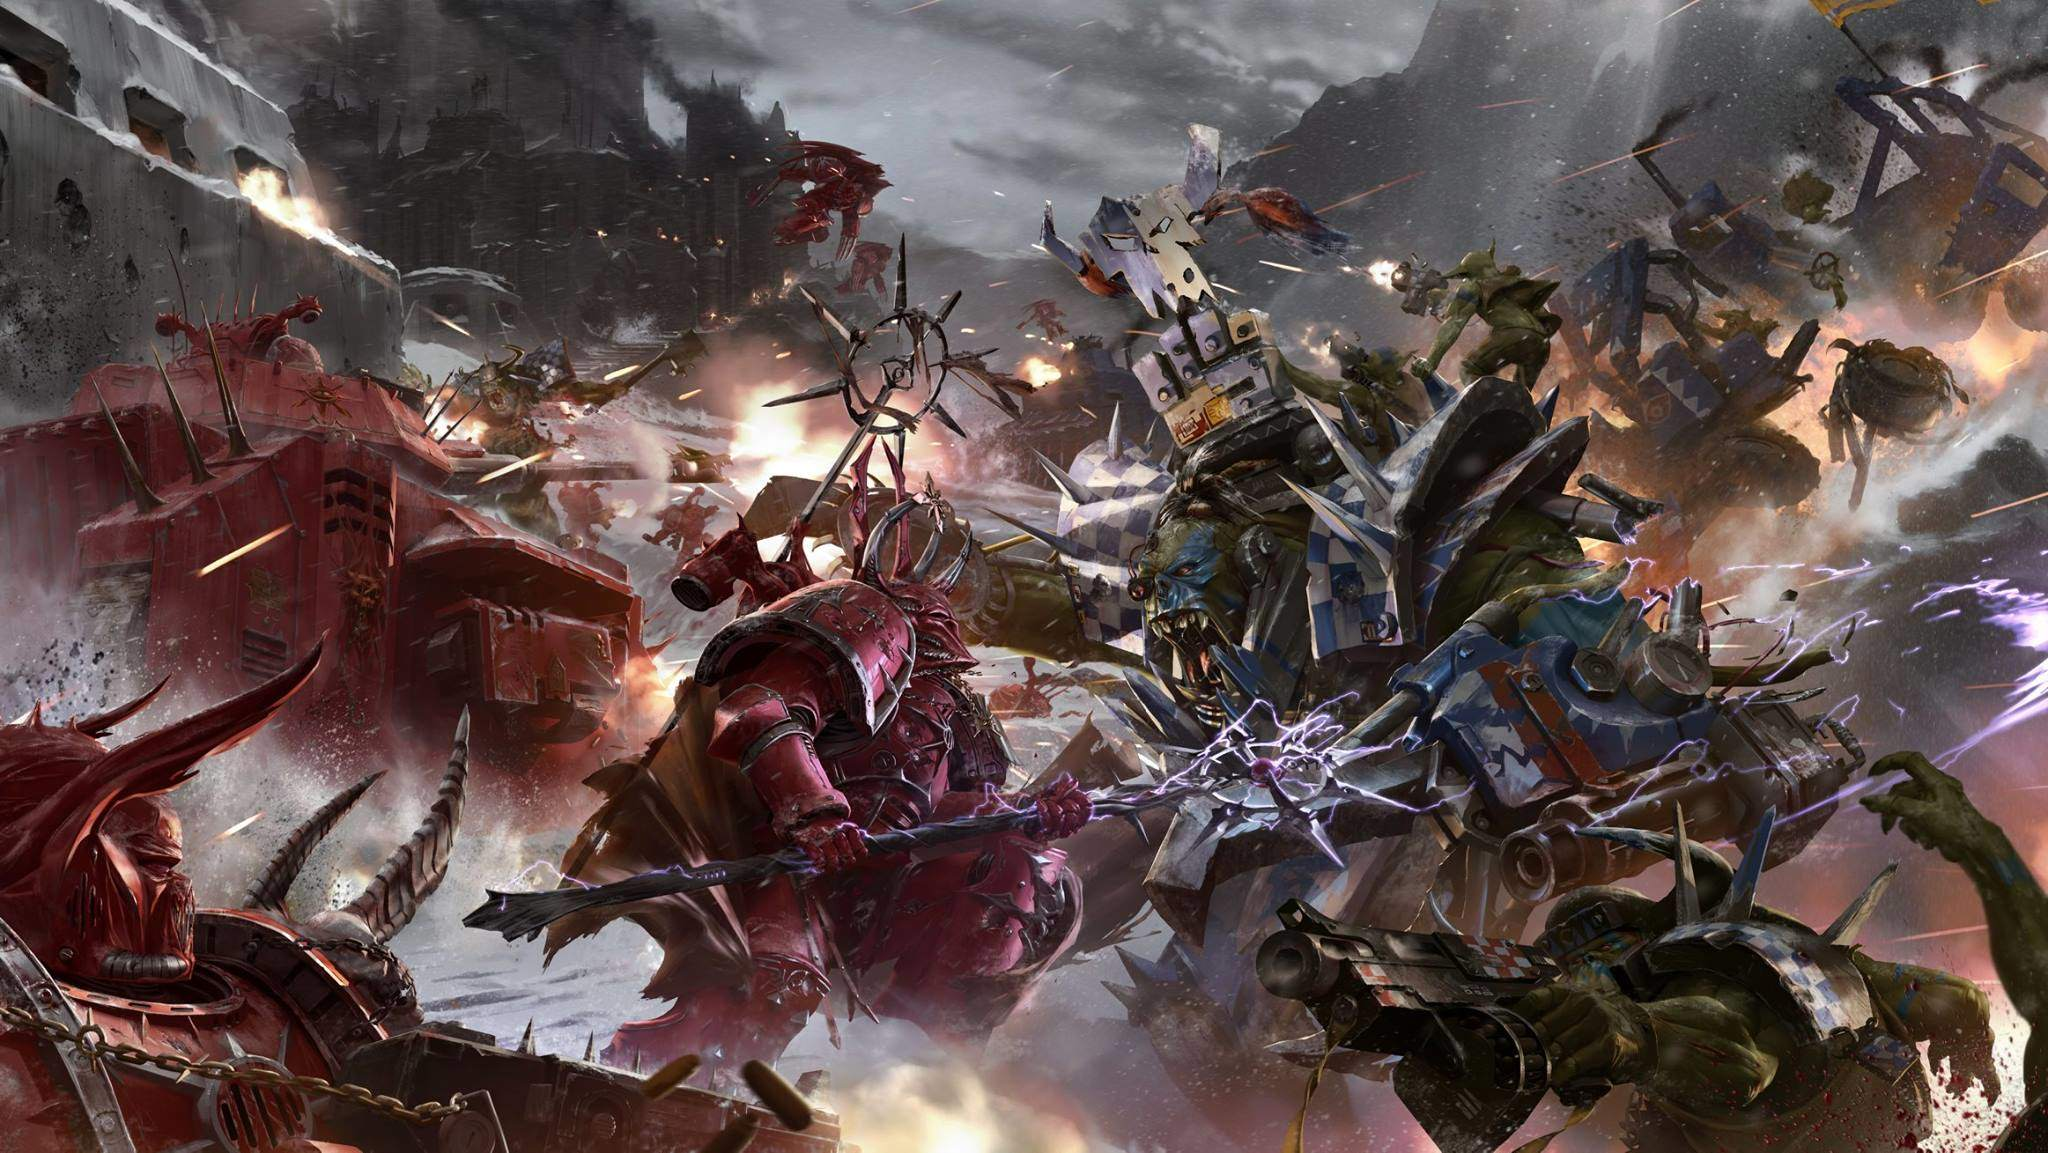 warhammer 40k wallpaper space marines